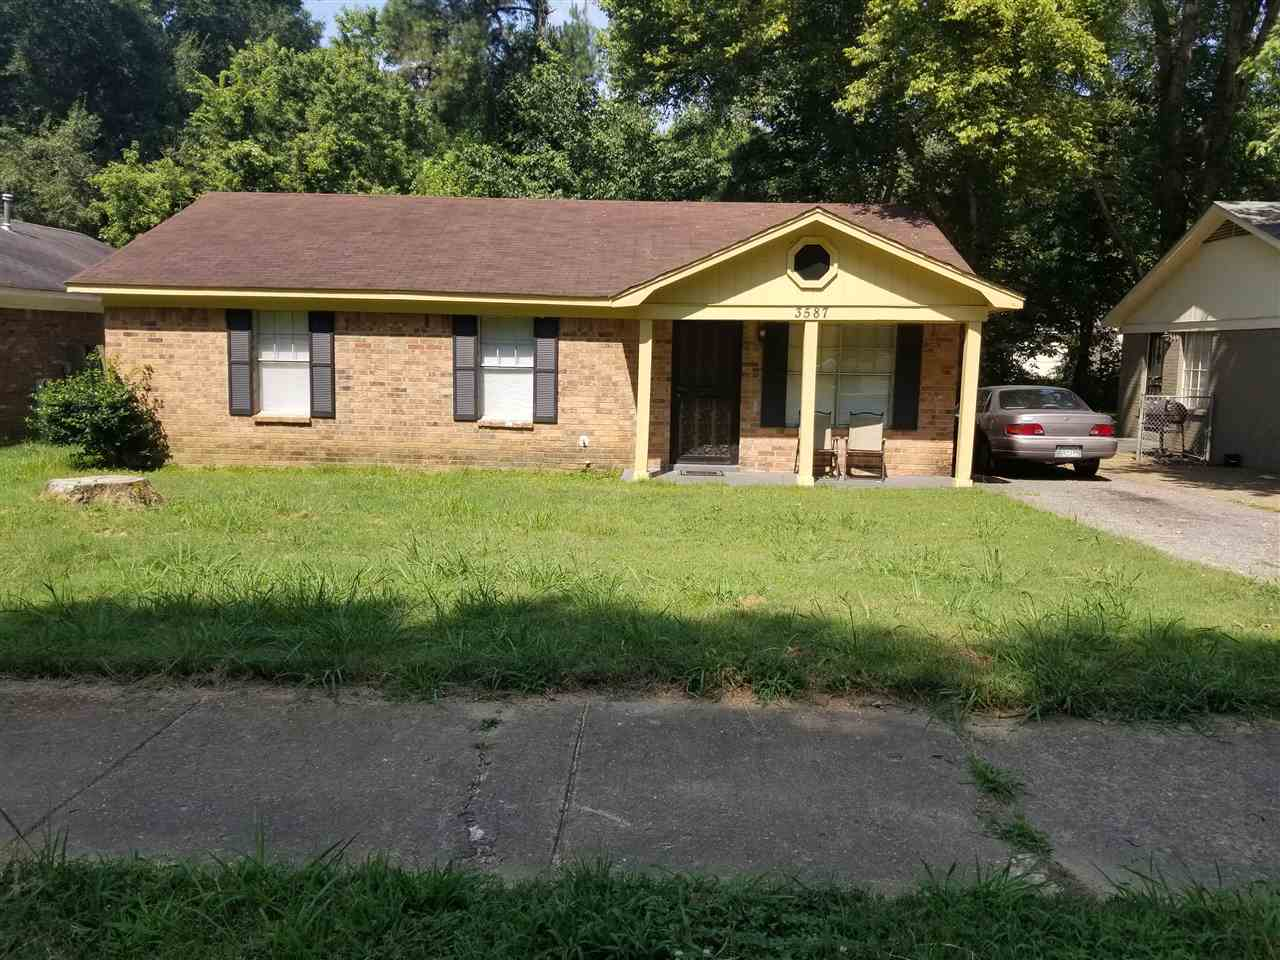 Property for sale at 3587 Edgefield St, Memphis,  TN 38128